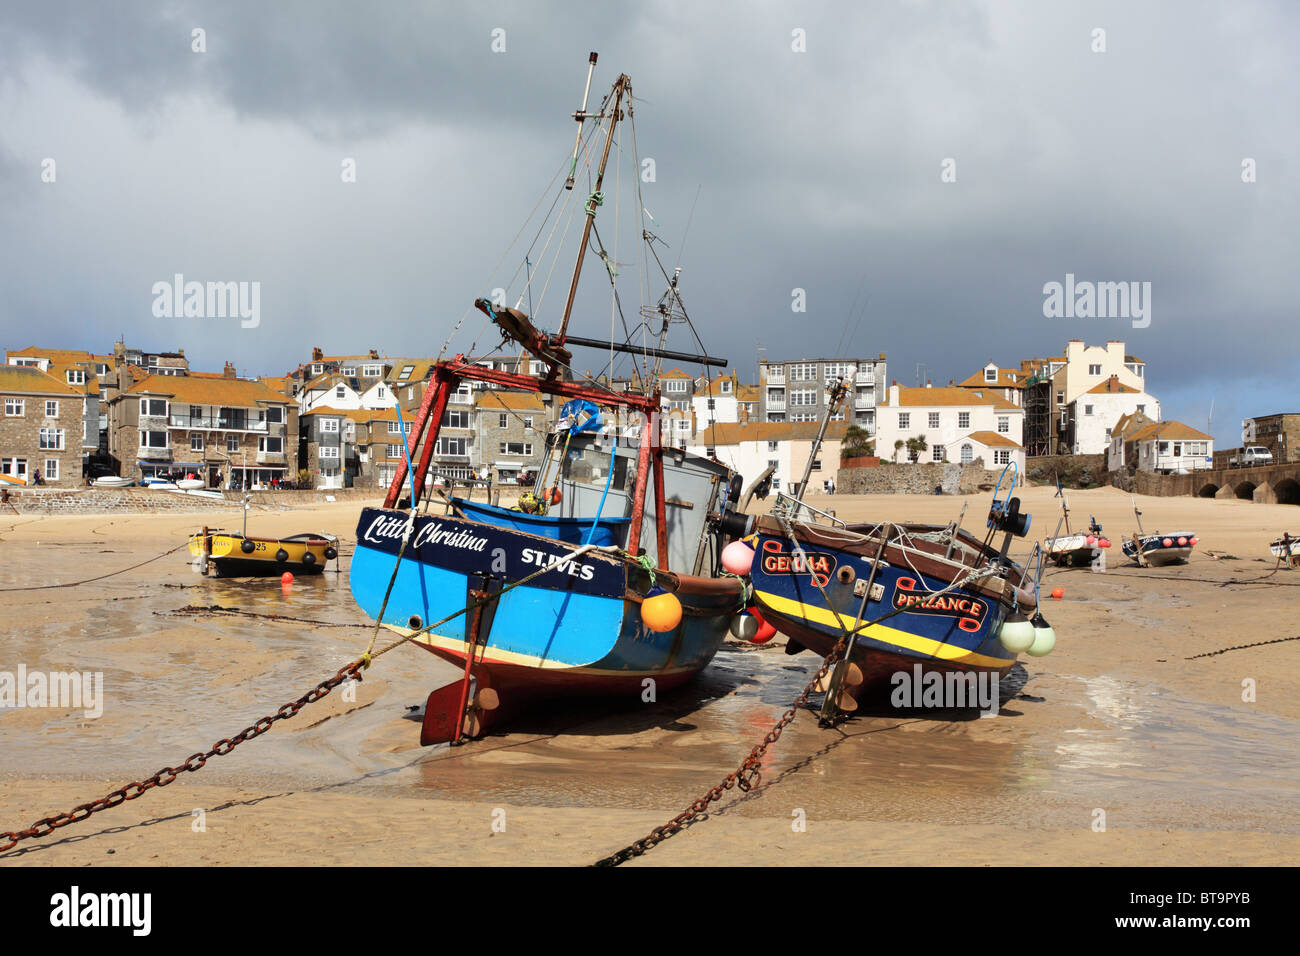 Boats in St Ives harbour captured at low tide Stock Photo